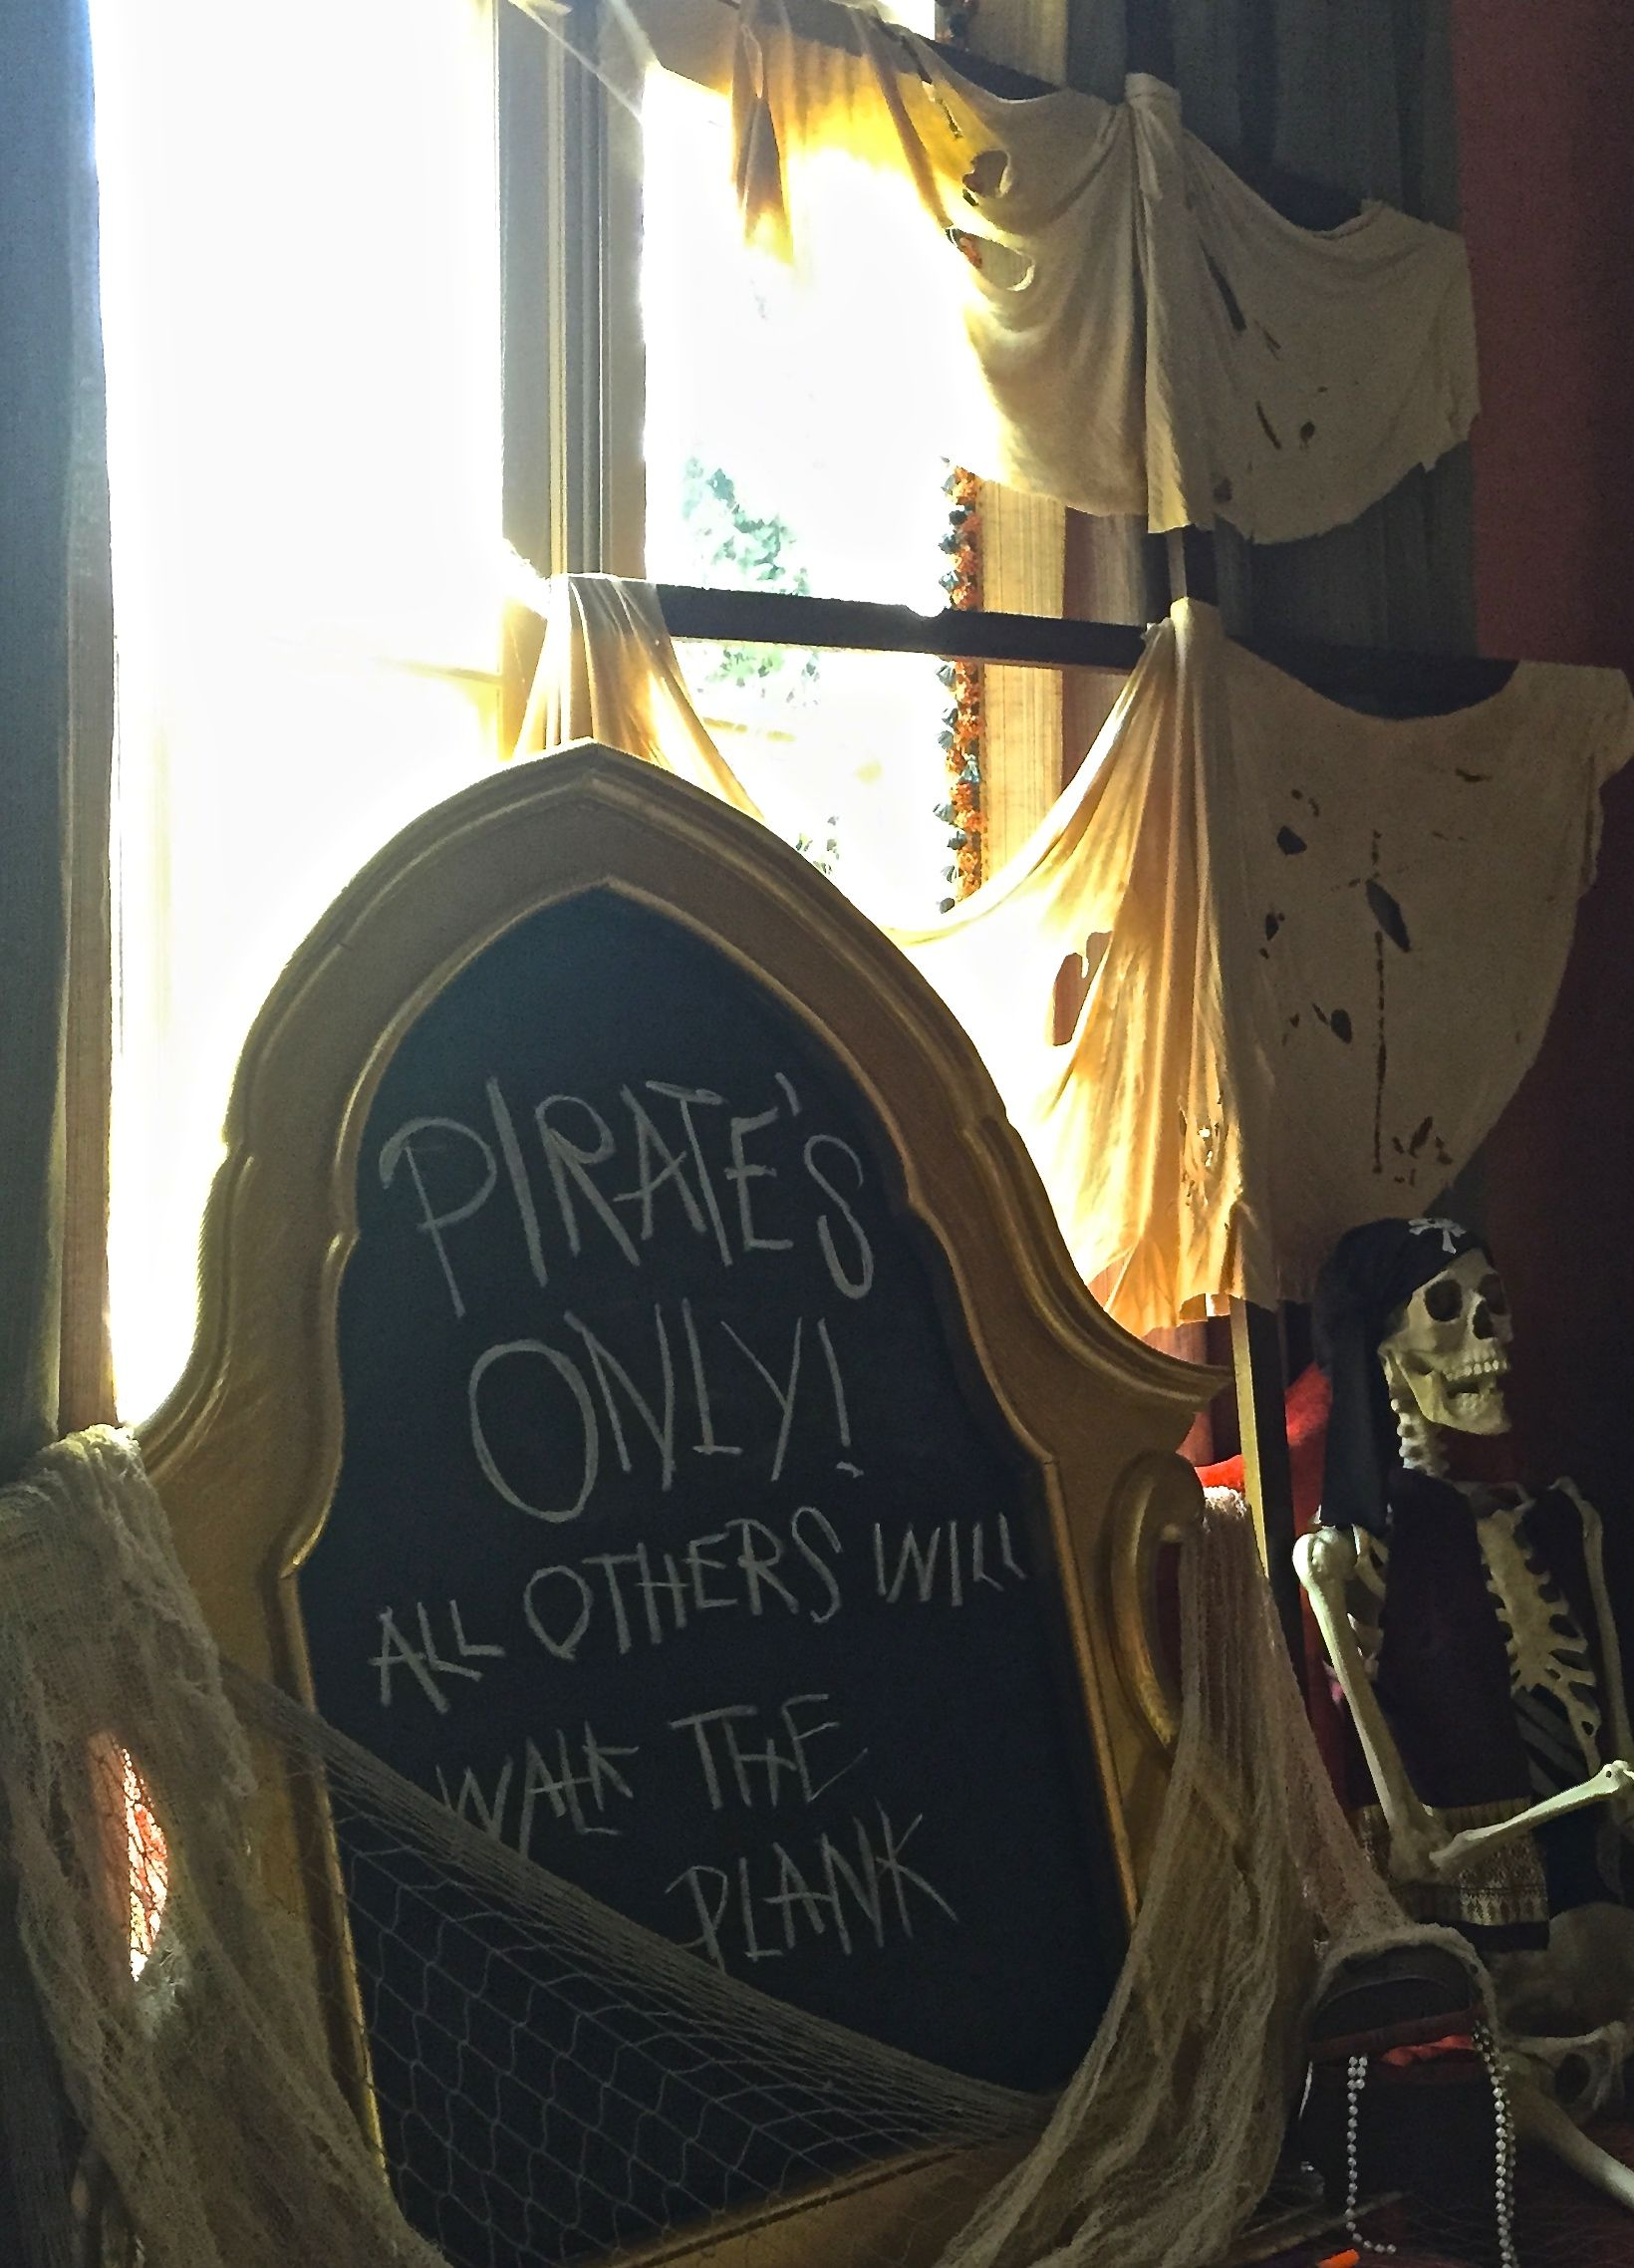 PIRATES ONLY! ALL OTHERS WILL WALK THE PLANK! Pirate Party decor ...